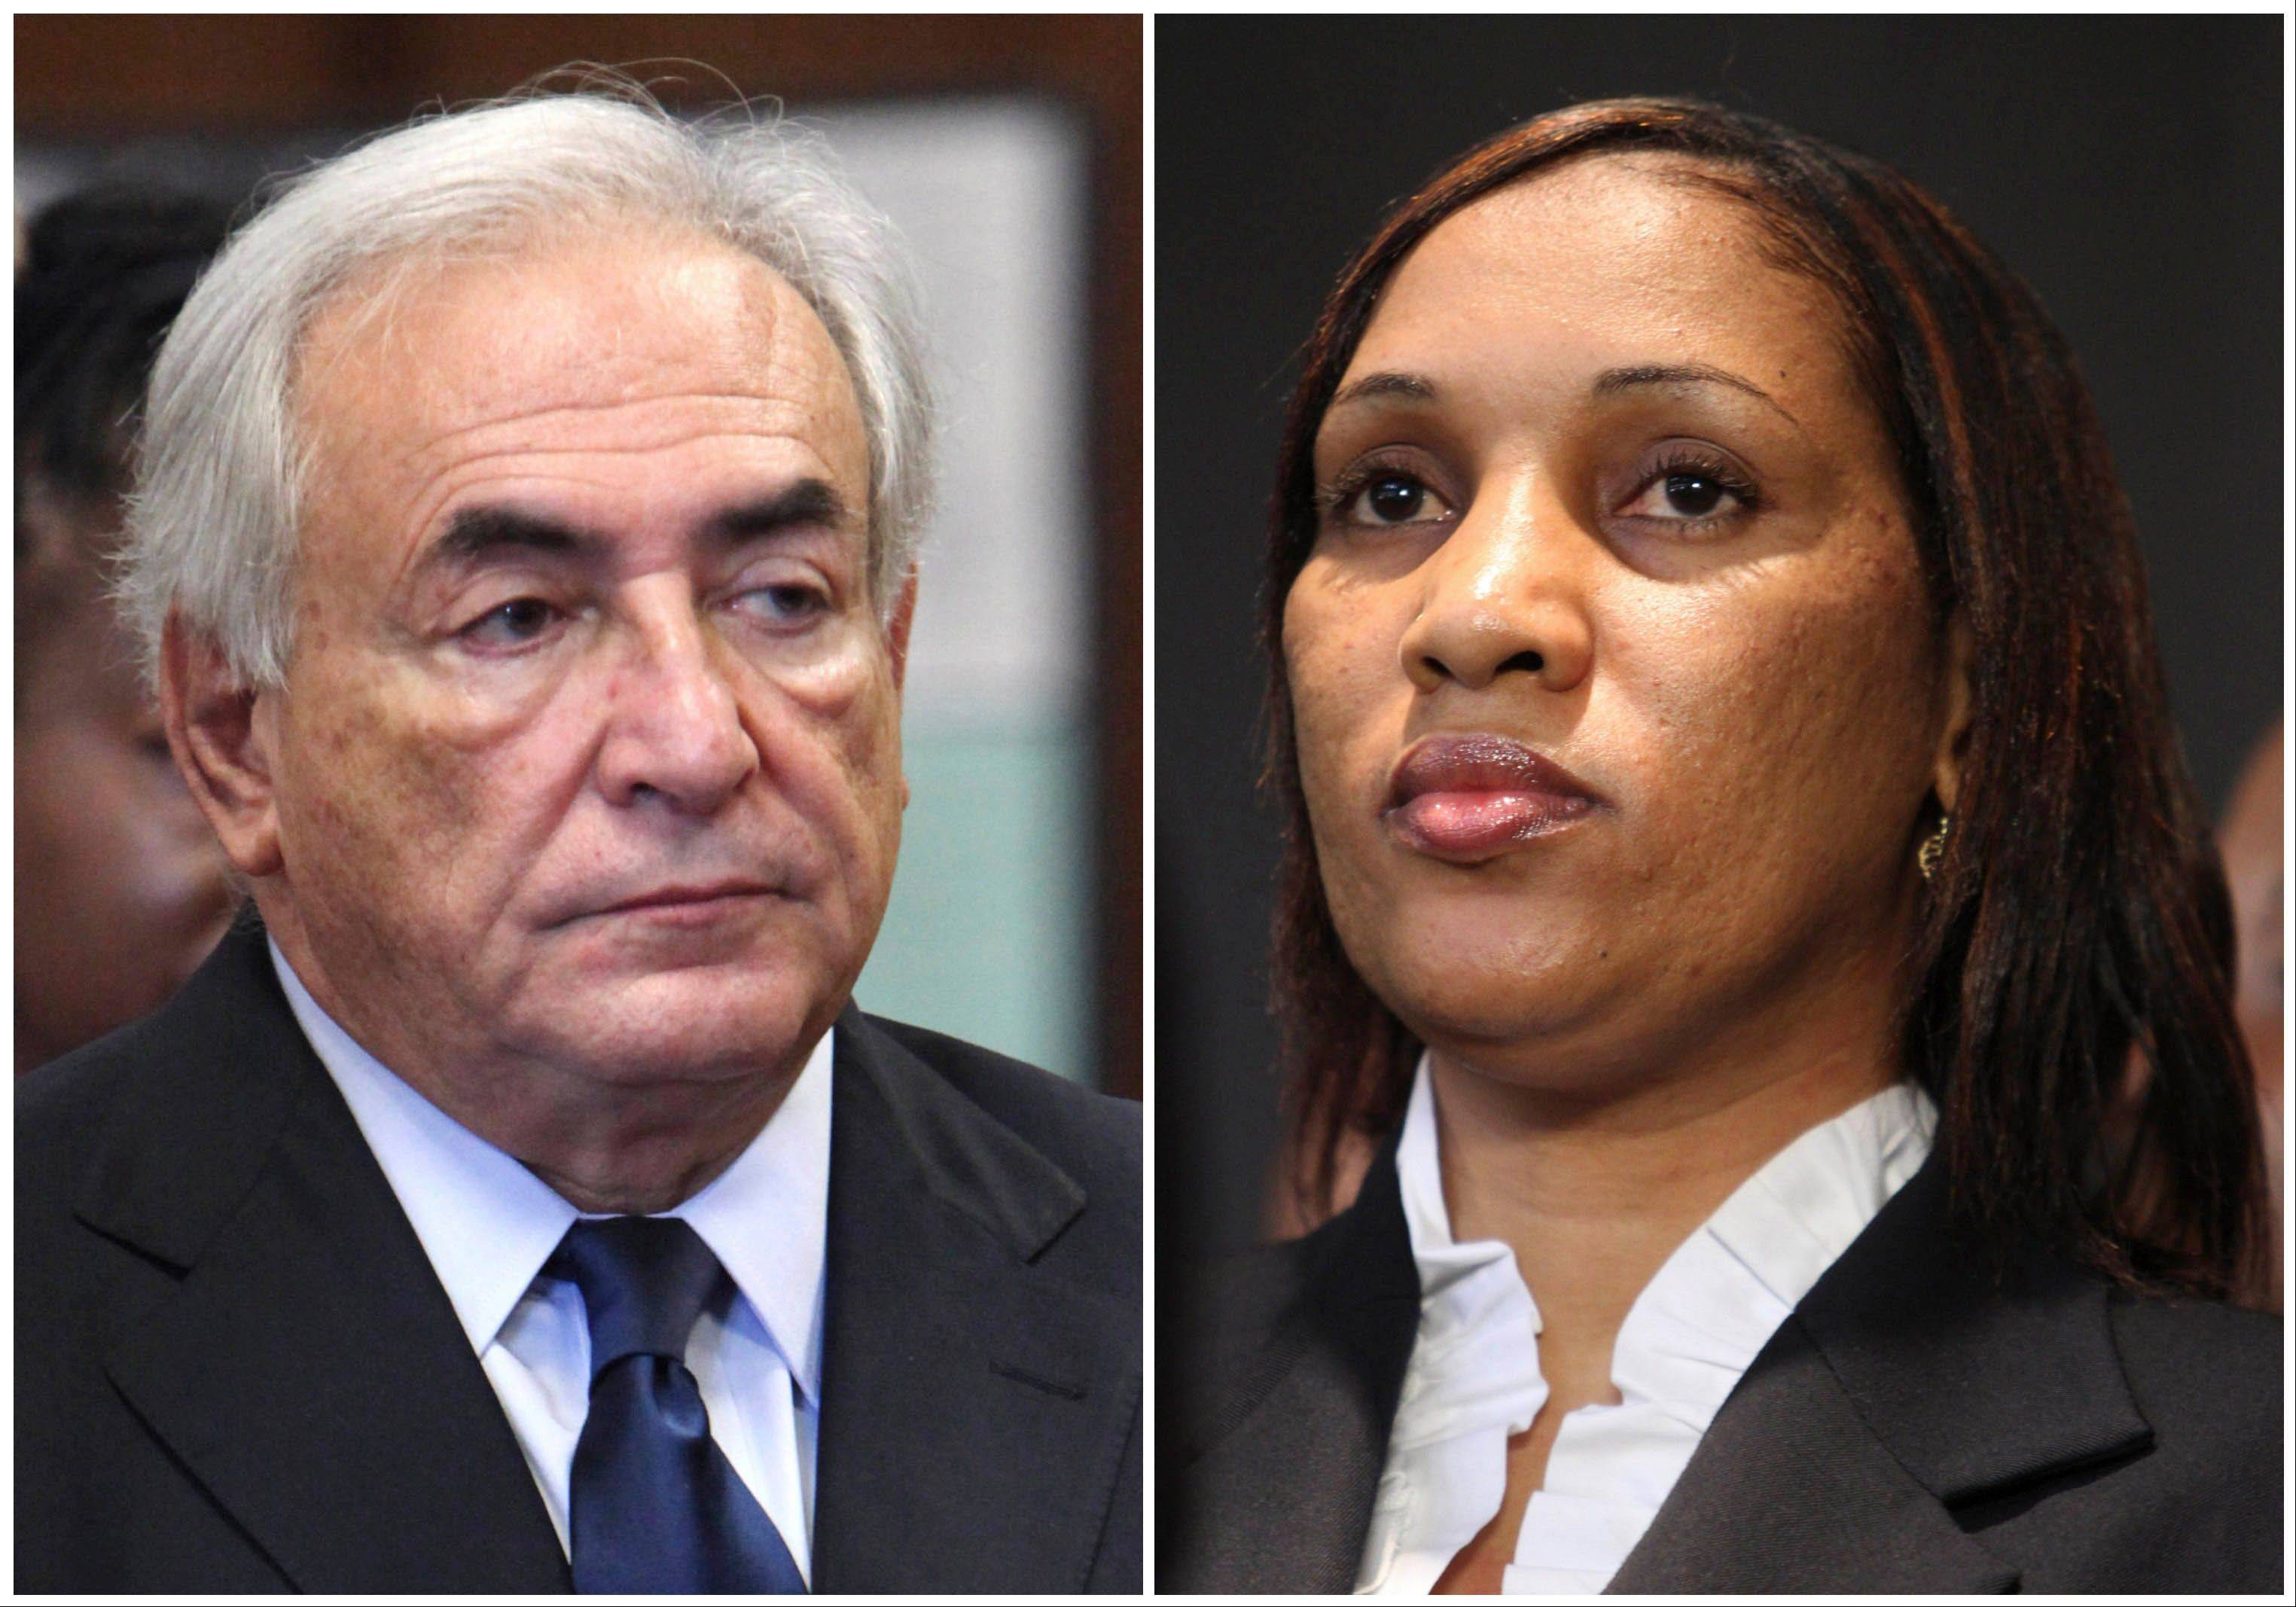 Former International Monetary Fund leader Dominique Strauss-Kahn is seen at left, and Nafissatou Diallo is seen at right. Dialloís sexual assault lawsuit against the former IMF leader could wrap up as soon as Monday in a quiet deal.